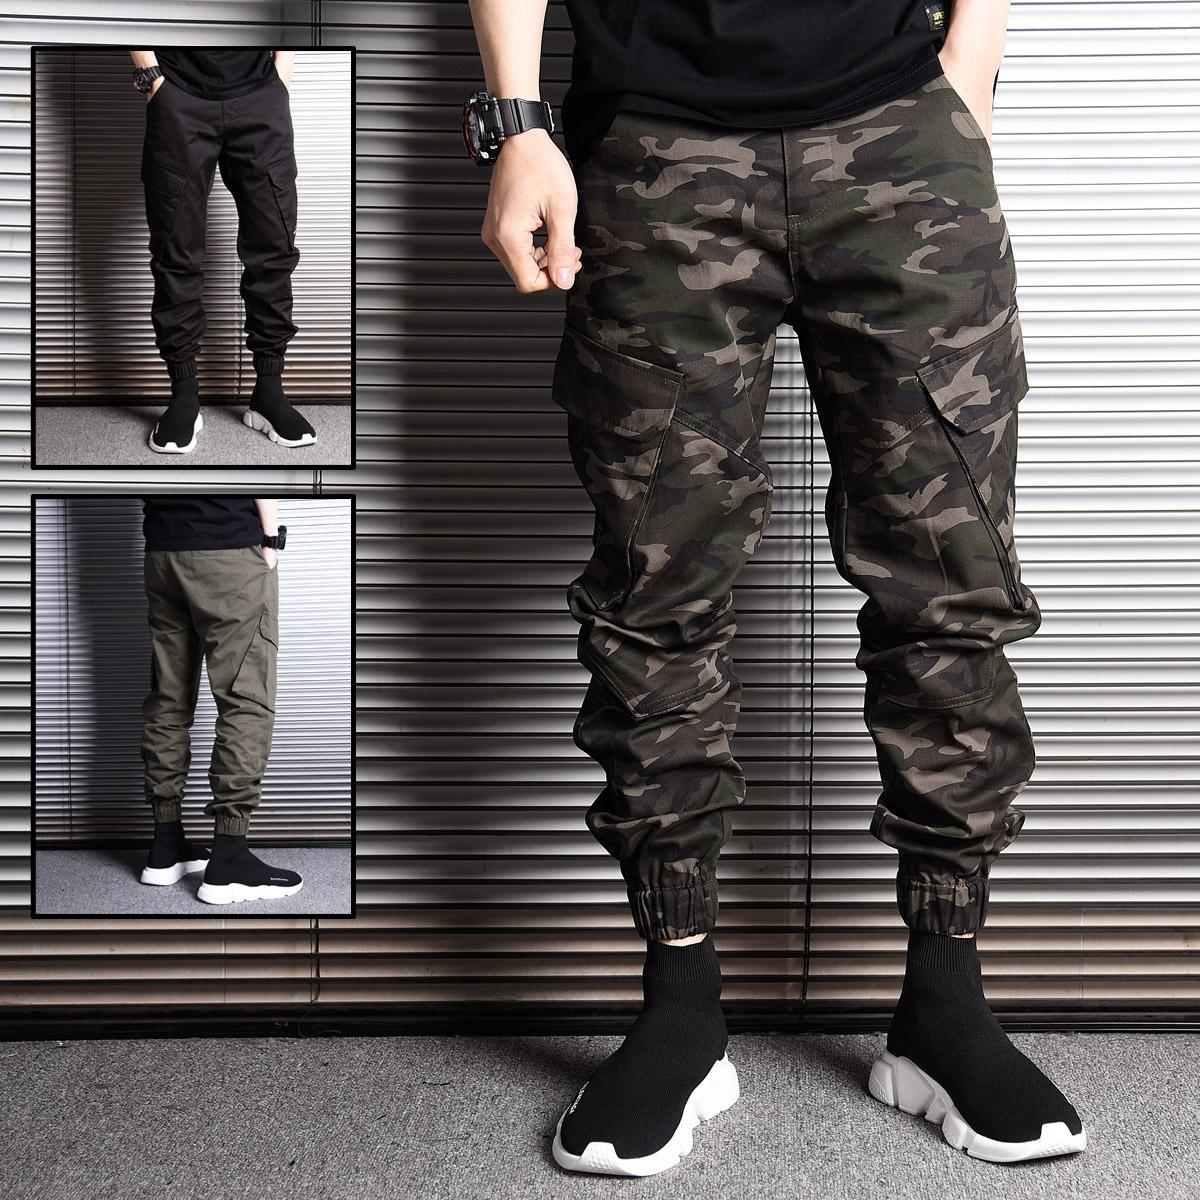 7950f9b205bb Enshadower Japanese-style Camouflage Ankle Banded Pants Jogger Pants  Popular Brand Skinny Big Pocket Bib